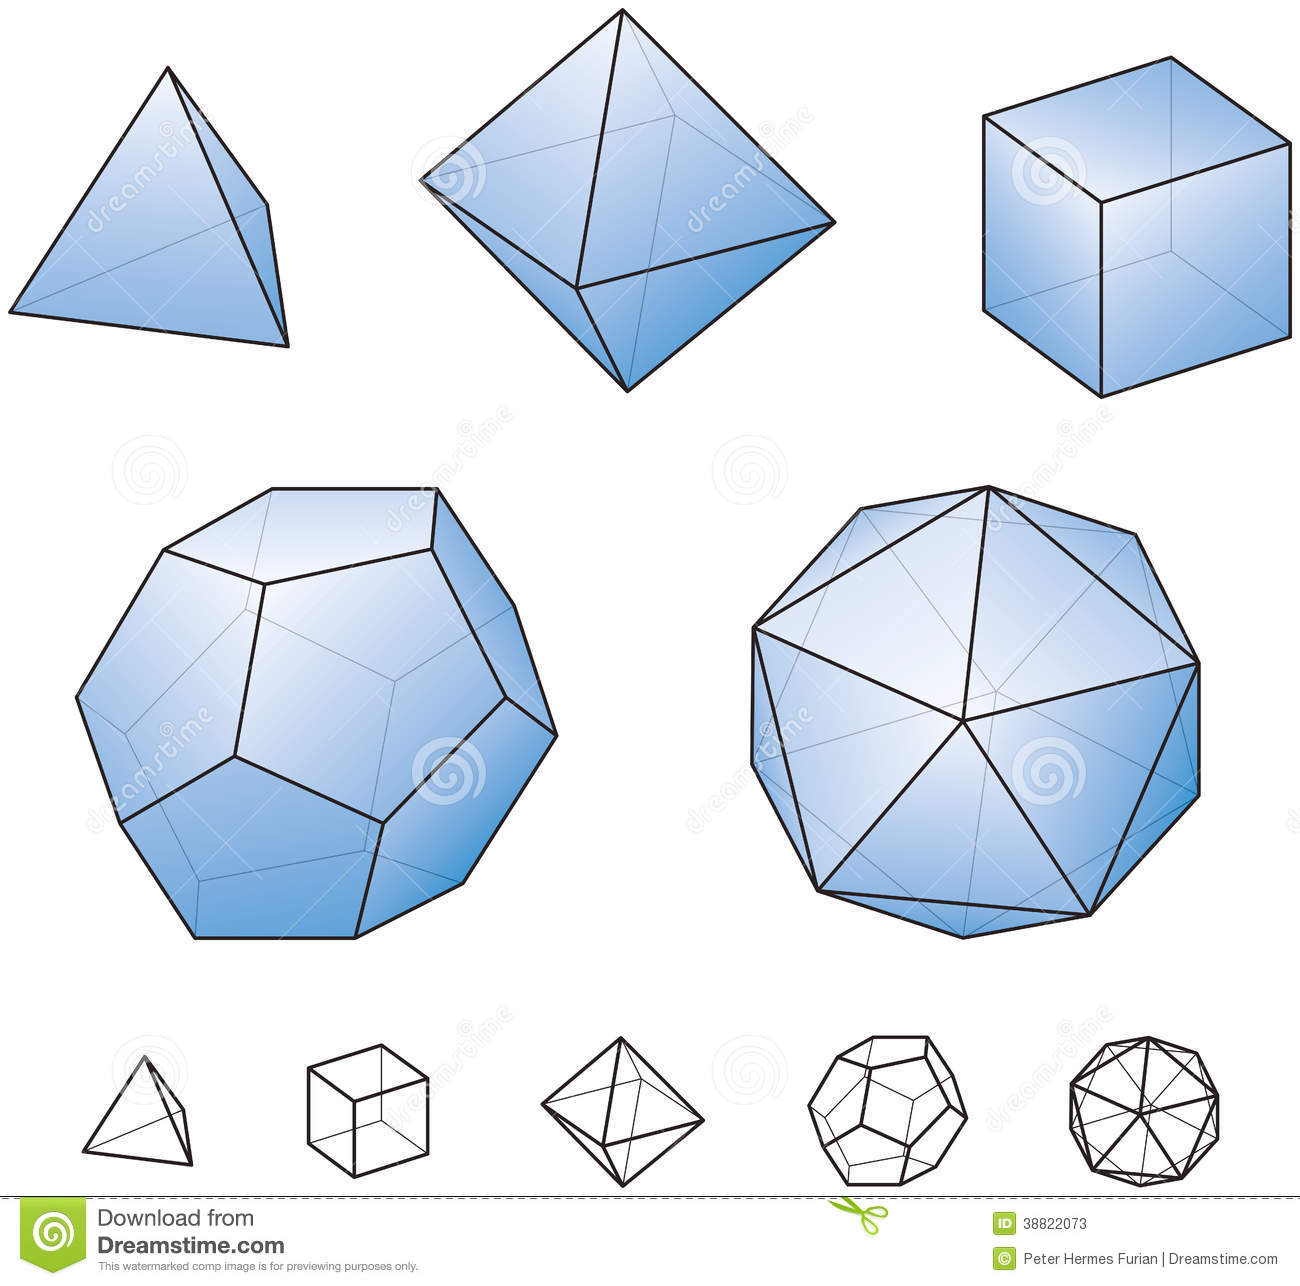 Platonic Solids With Green Surfaces Stock Vector - Illustration of ...